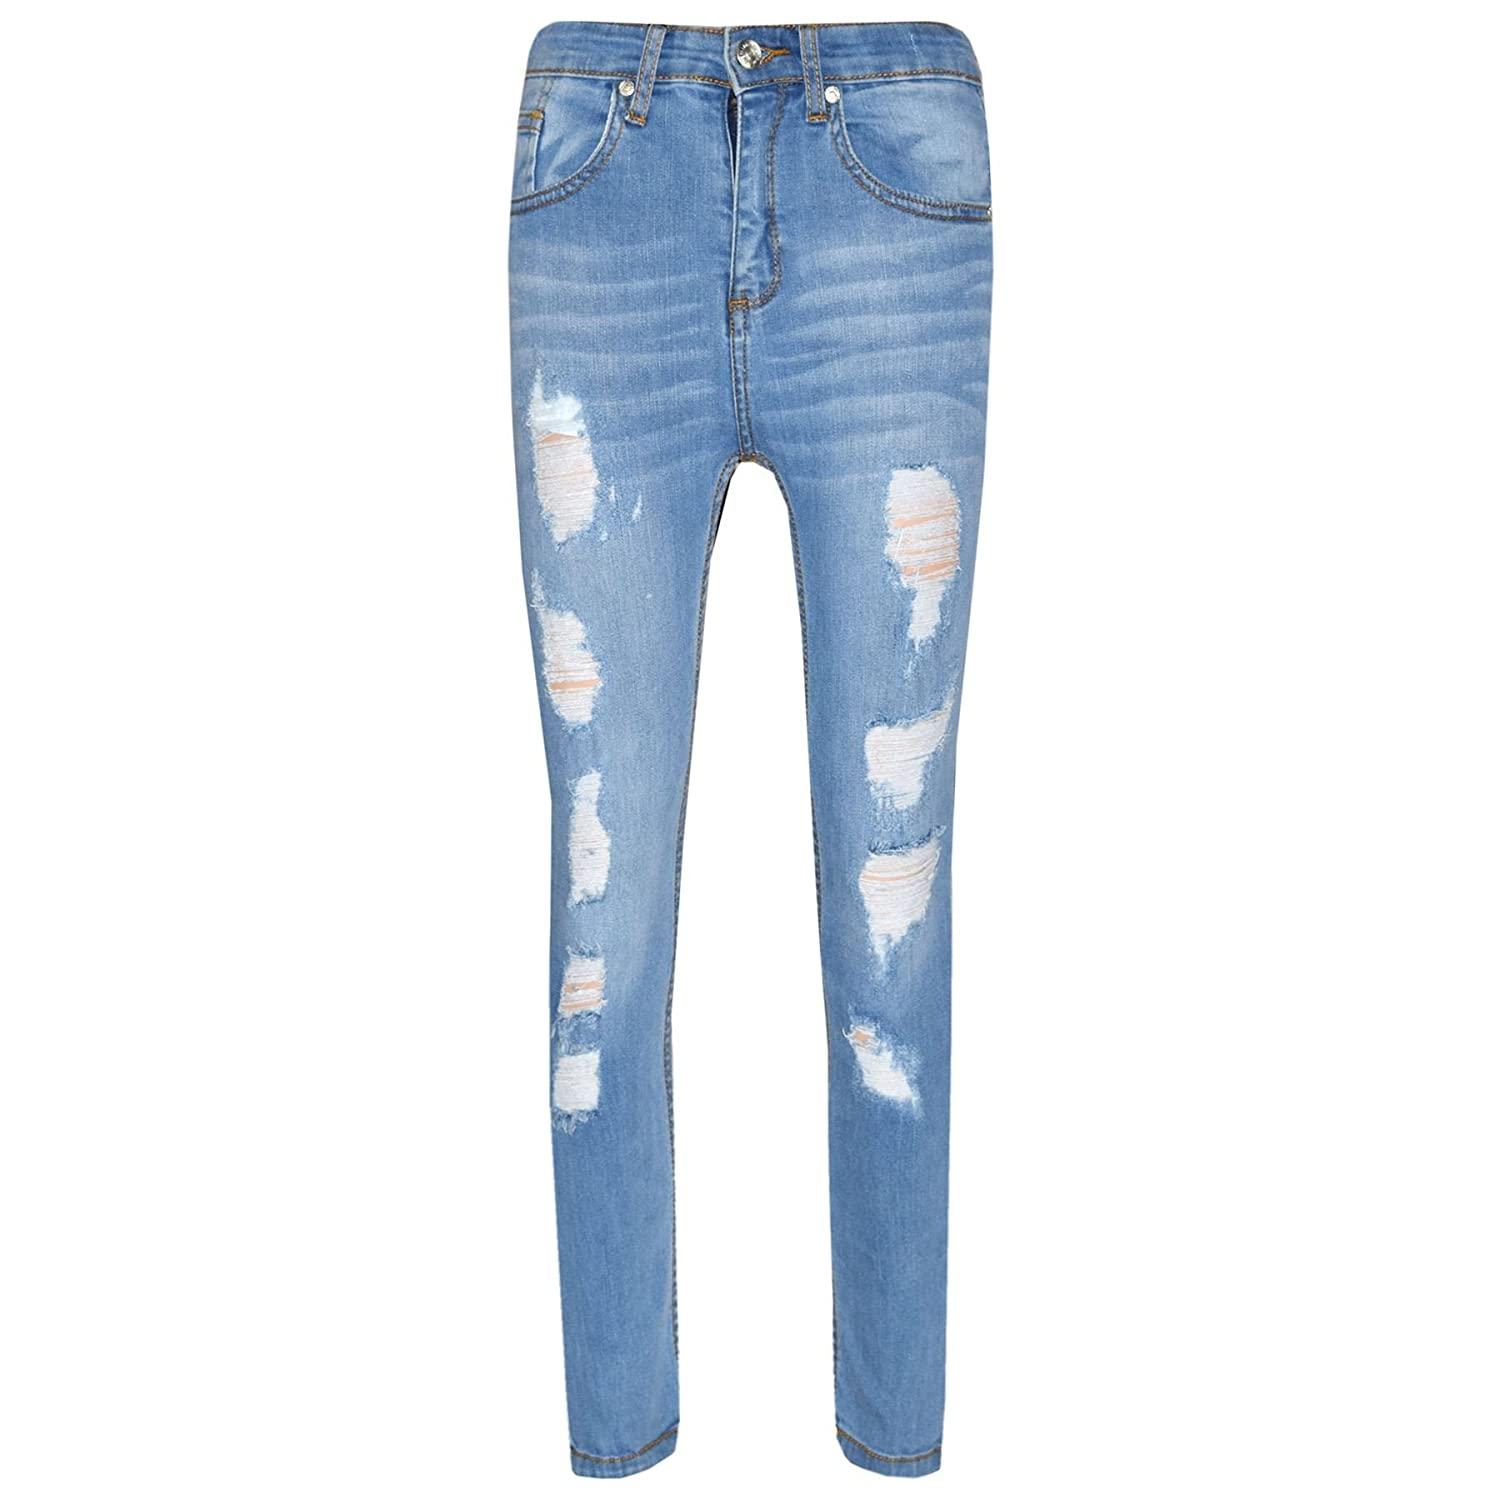 A2Z 4 Kids® Boys Stretchy Jeans Kids Designer's Ripped Denim Skinny Pants Fashion Trousers Age 5 6 7 8 9 10 11 12 13 Years